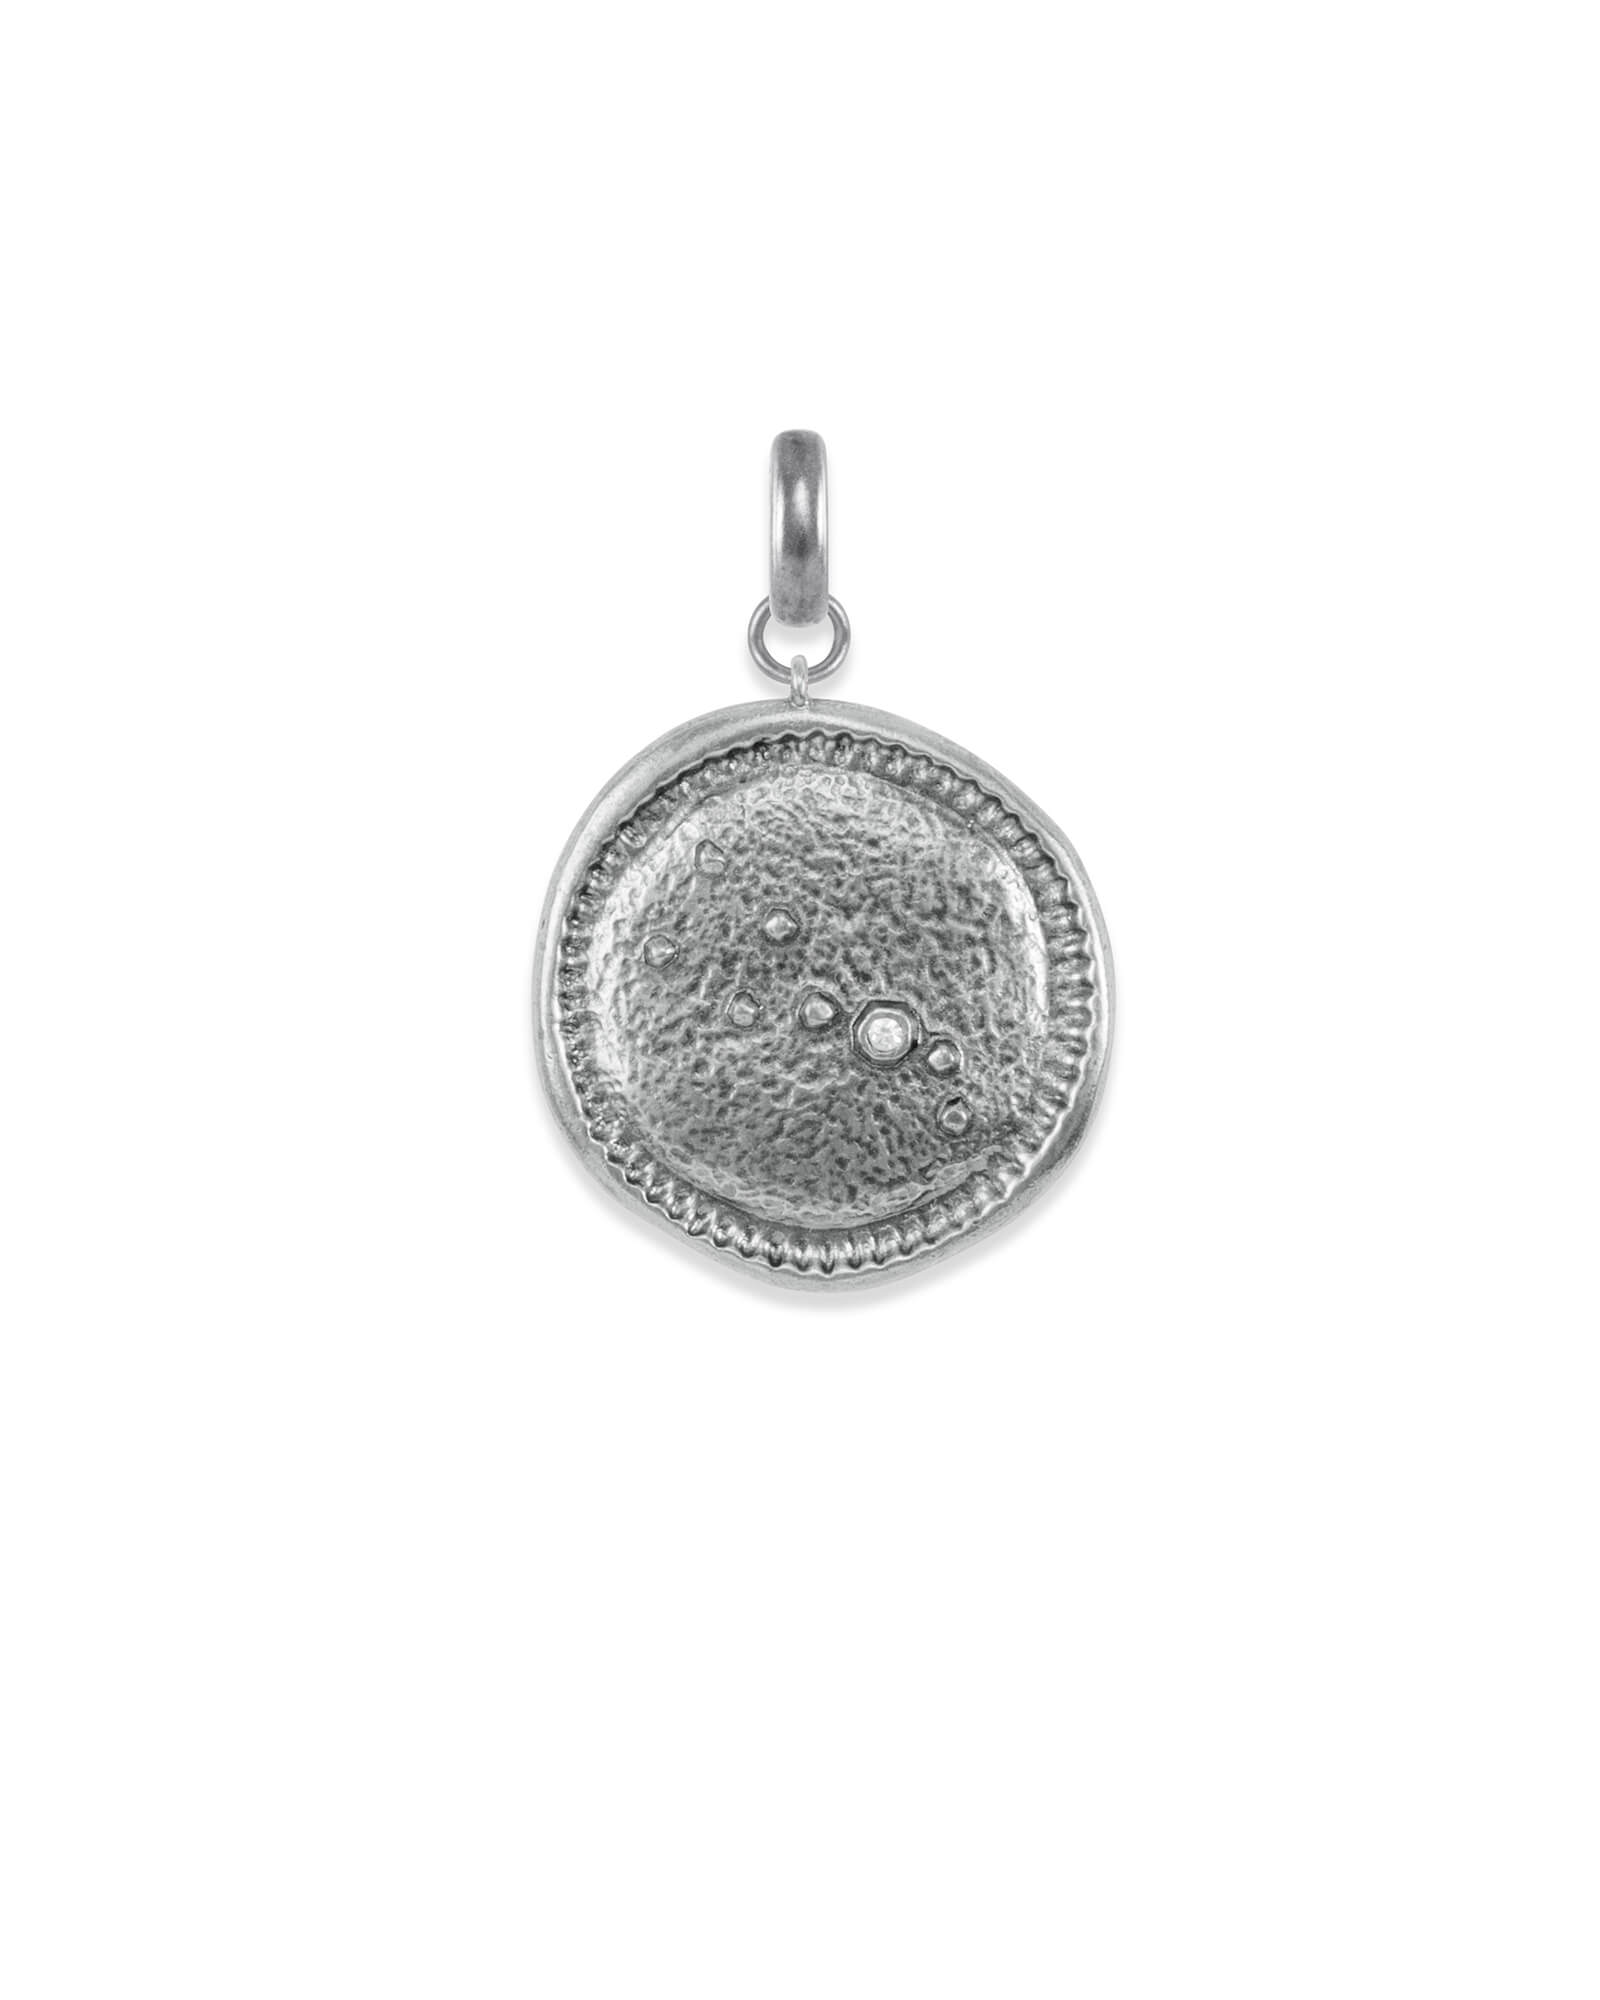 Taurus Coin Charm in Vintage Silver